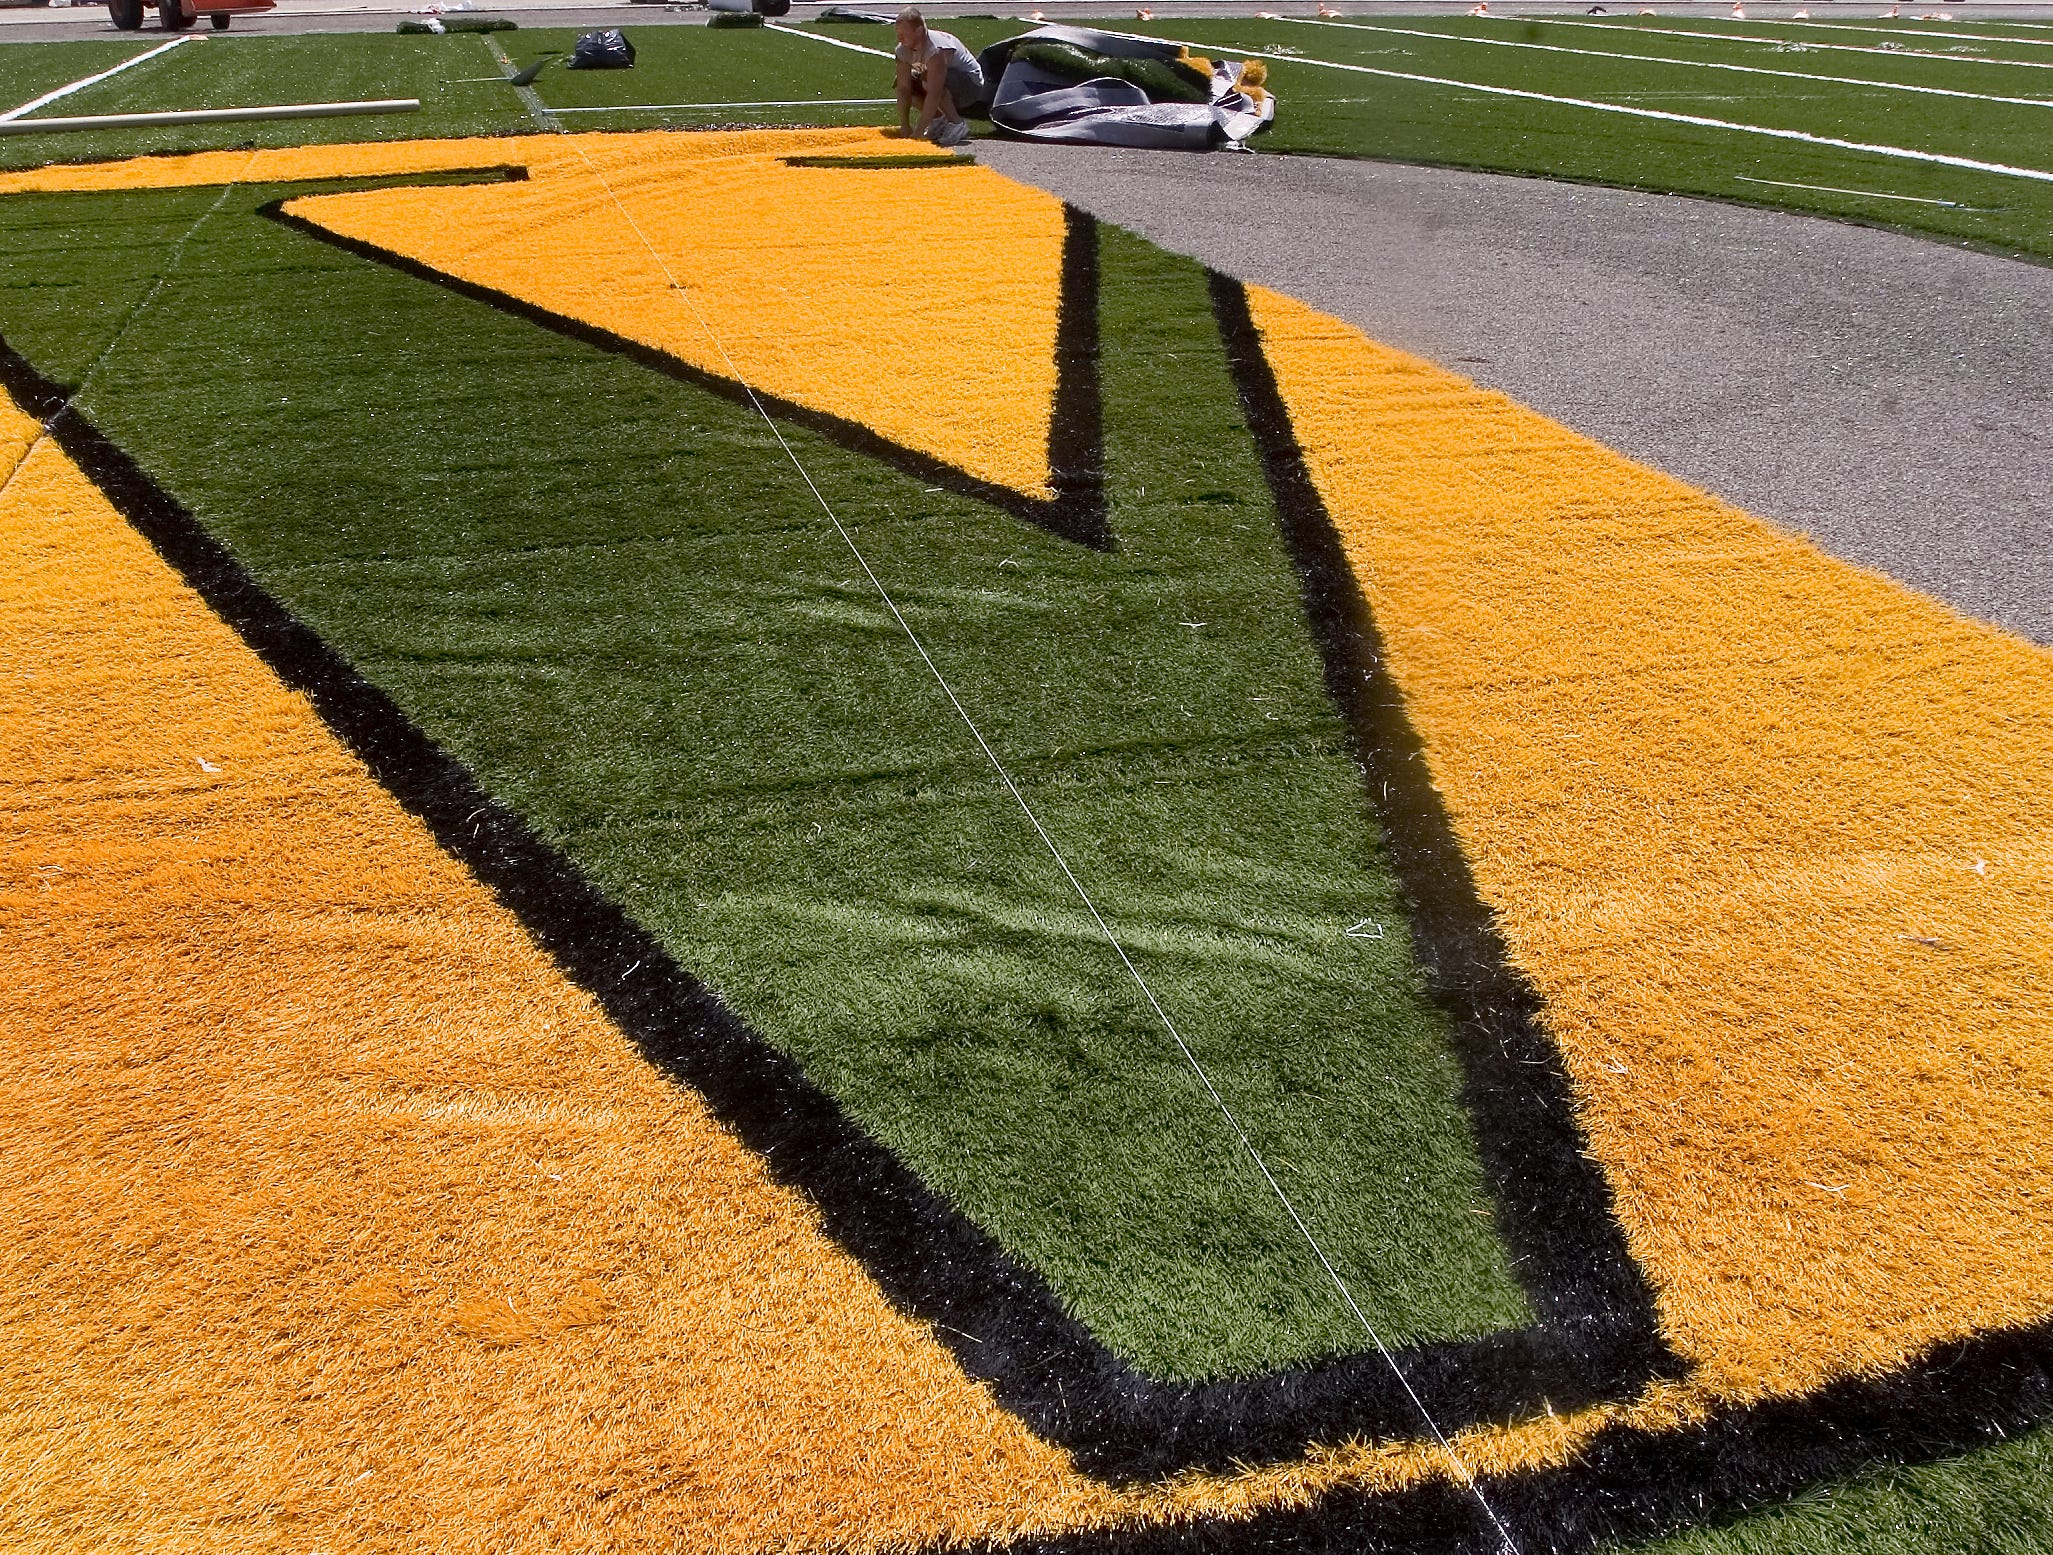 A big V for the school's logo being installed in the center of the synthetic grass field in 2007 at Vestal High School's Dick Hoover Stadium. The complex was undergoing a complete renovation.